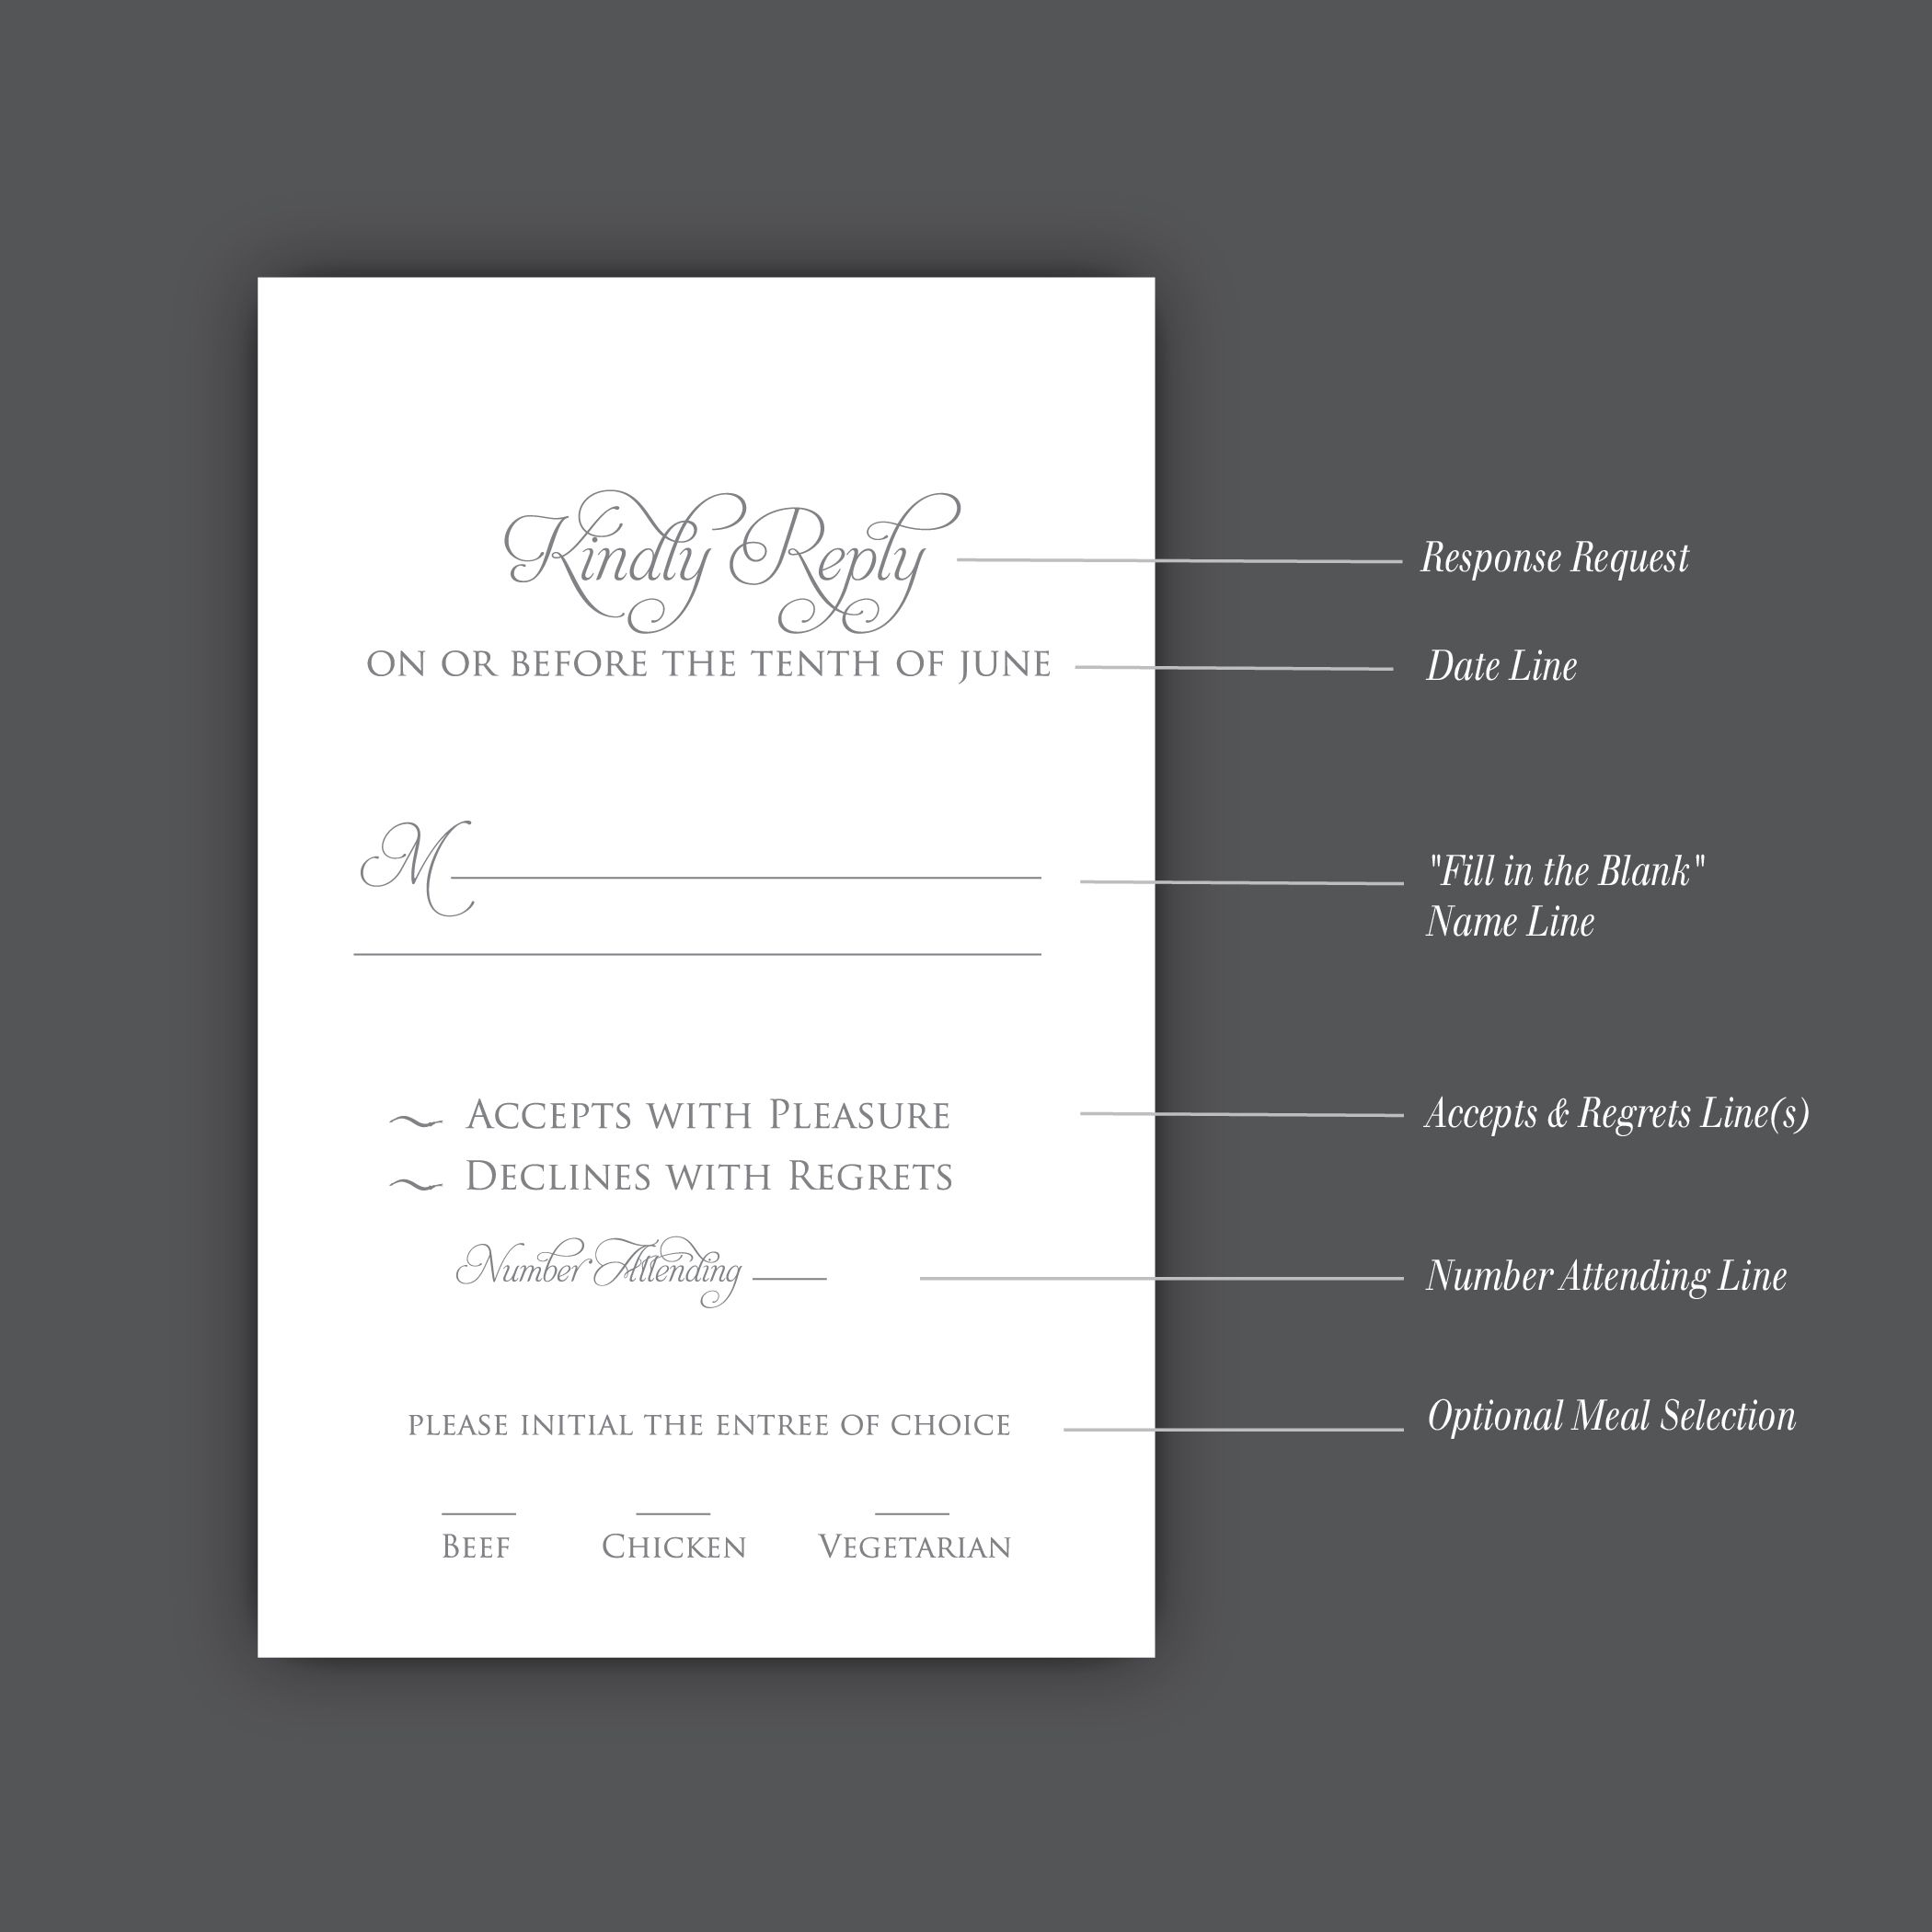 How to correctly word your wedding rsvp card rsvp for Wording for wedding invitations with rsvp